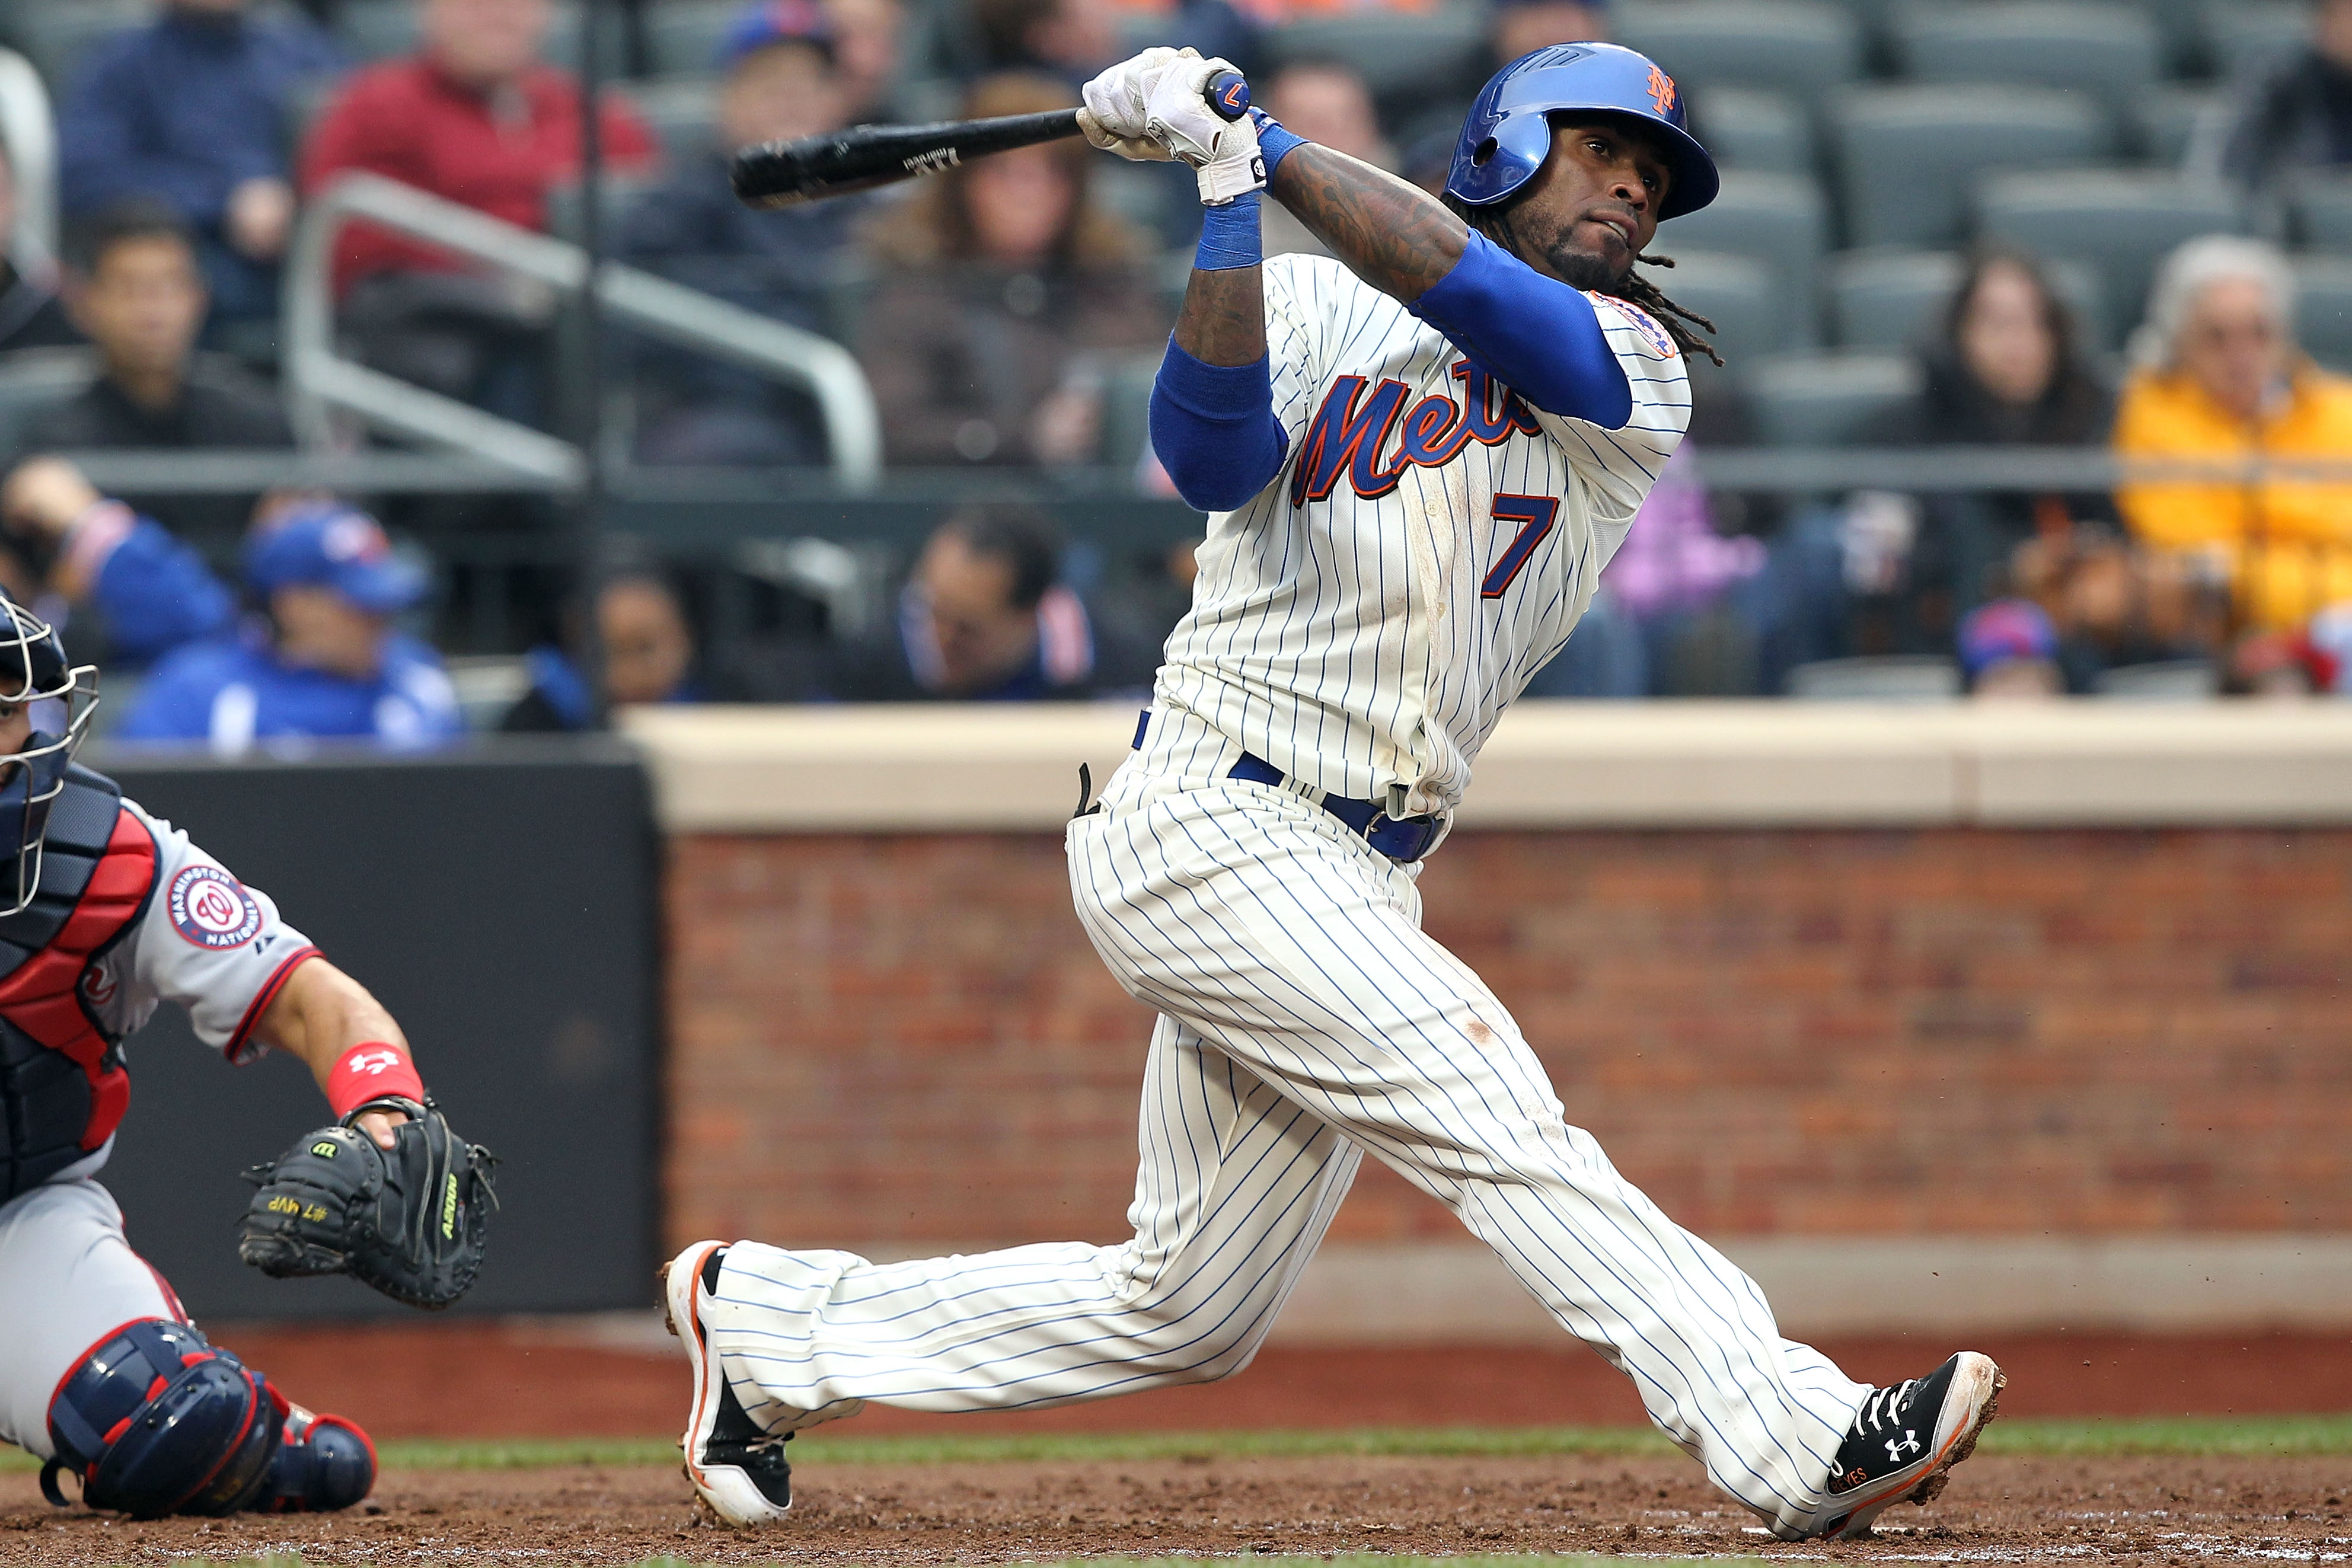 NEW YORK, NY - APRIL 08:  Jose Reyes #7 of the New York Mets bats against the Washington Nationals during the Mets' Home Opener at Citi Field on April 8, 2011 in the Flushing neighborhood of Queens in New York City. The Nationals won 6-2. (Photo by Al Bel